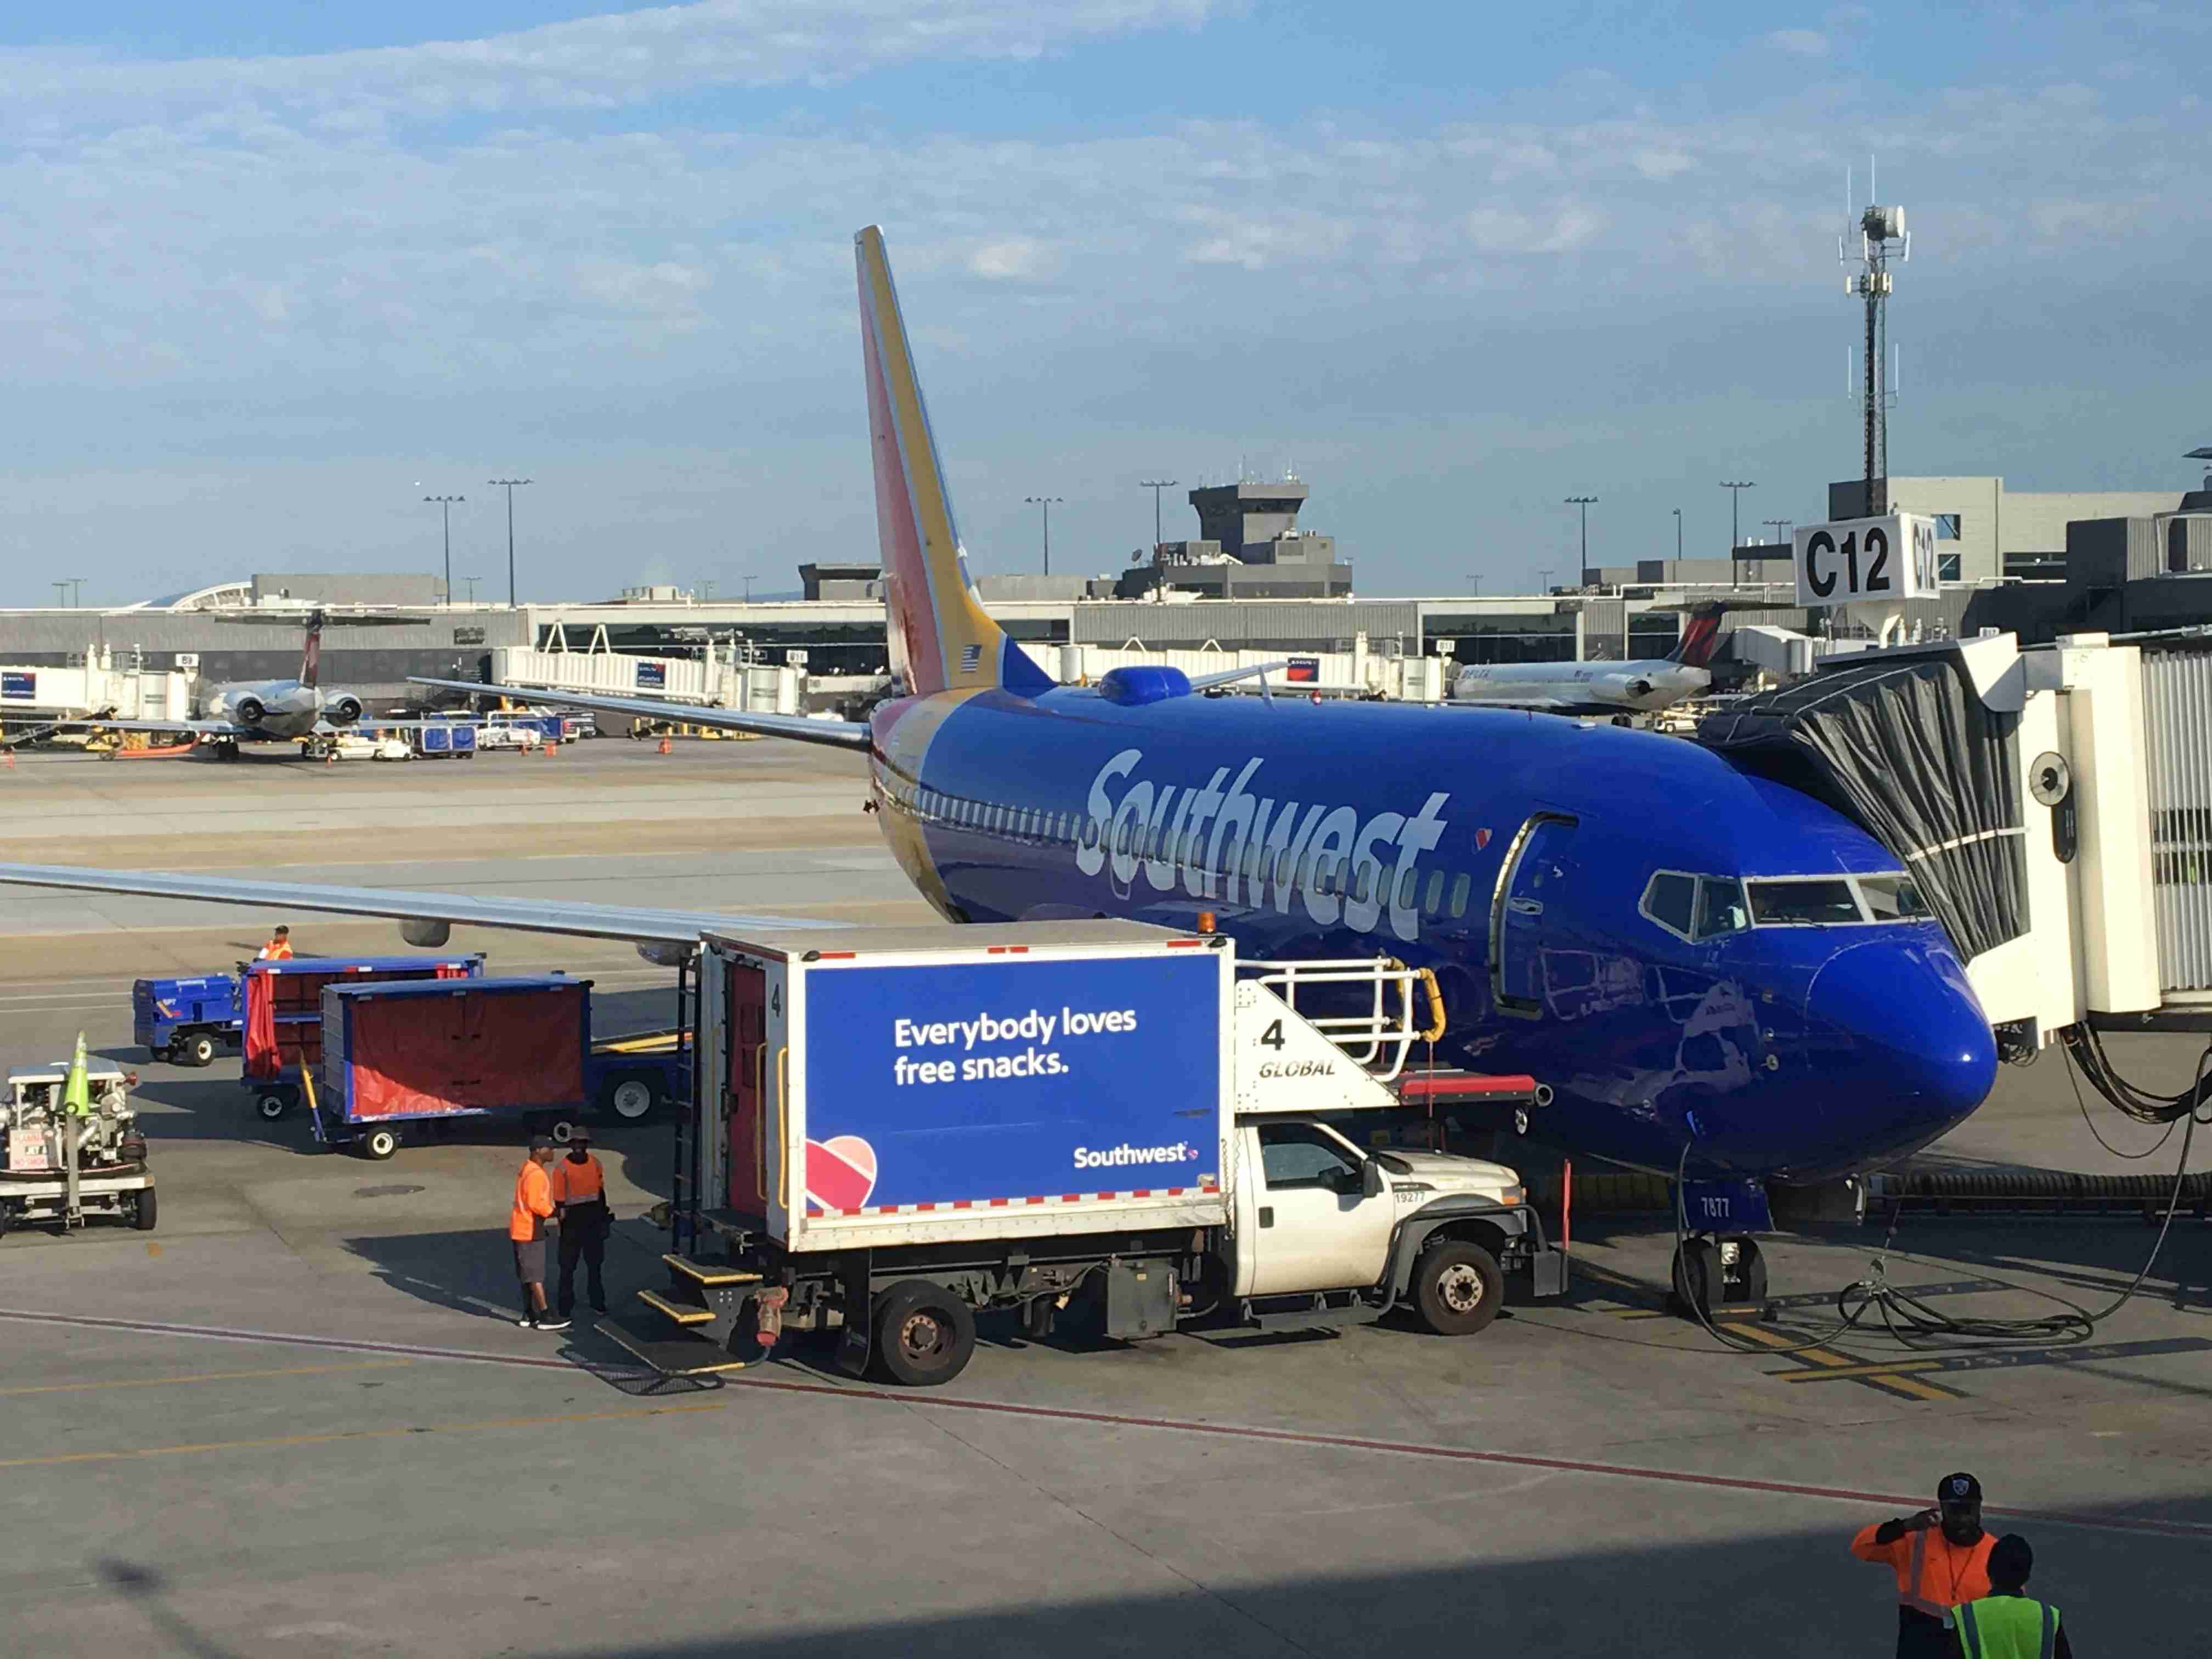 A Southwest Airlines Boeing 737 parked at BWI Airport. (Photo by Benét J. Wilson / The Points Guy)